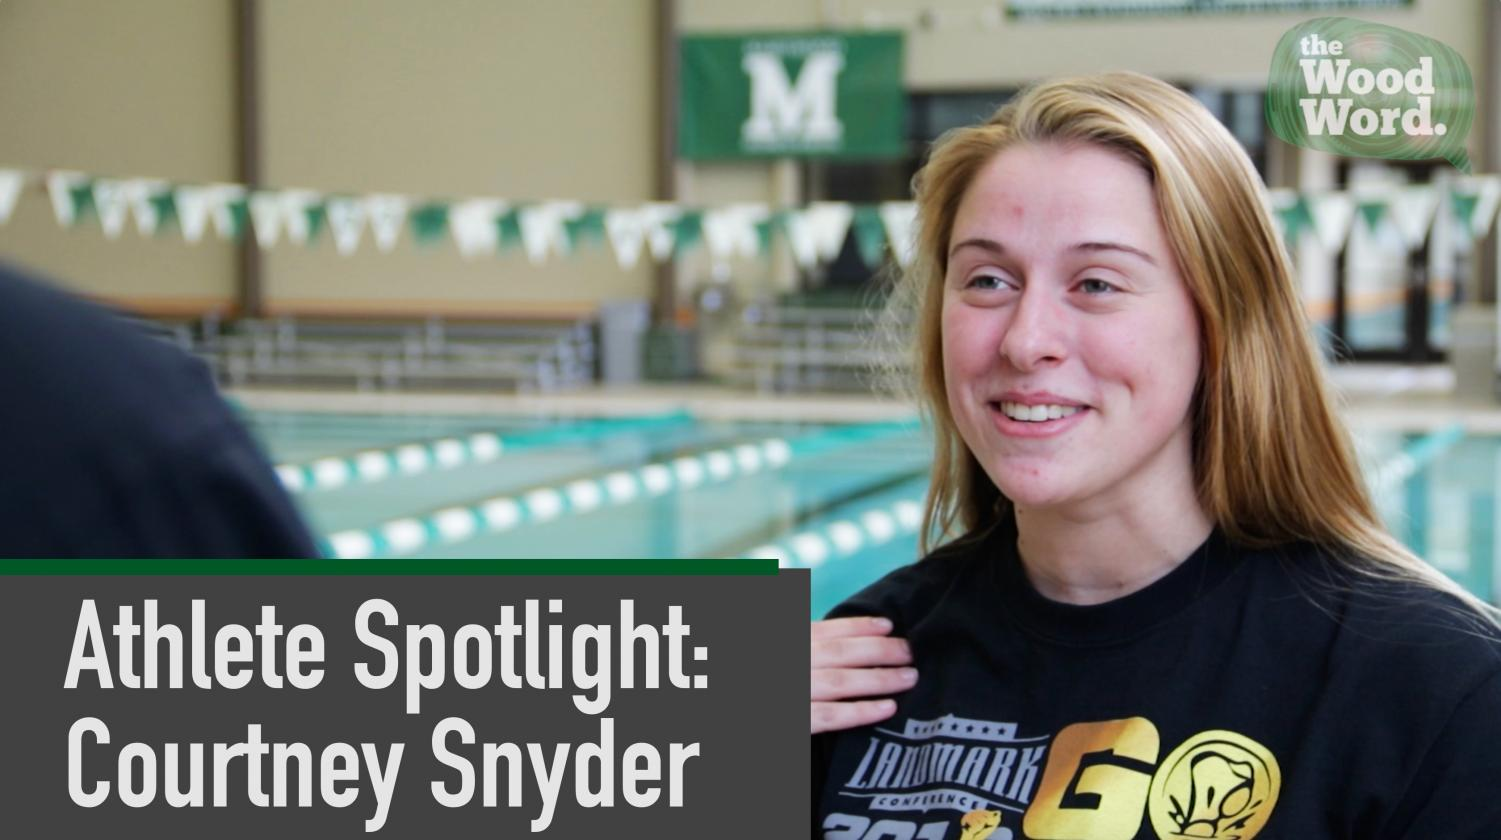 Athlete Spotlight: Courtney Snyder